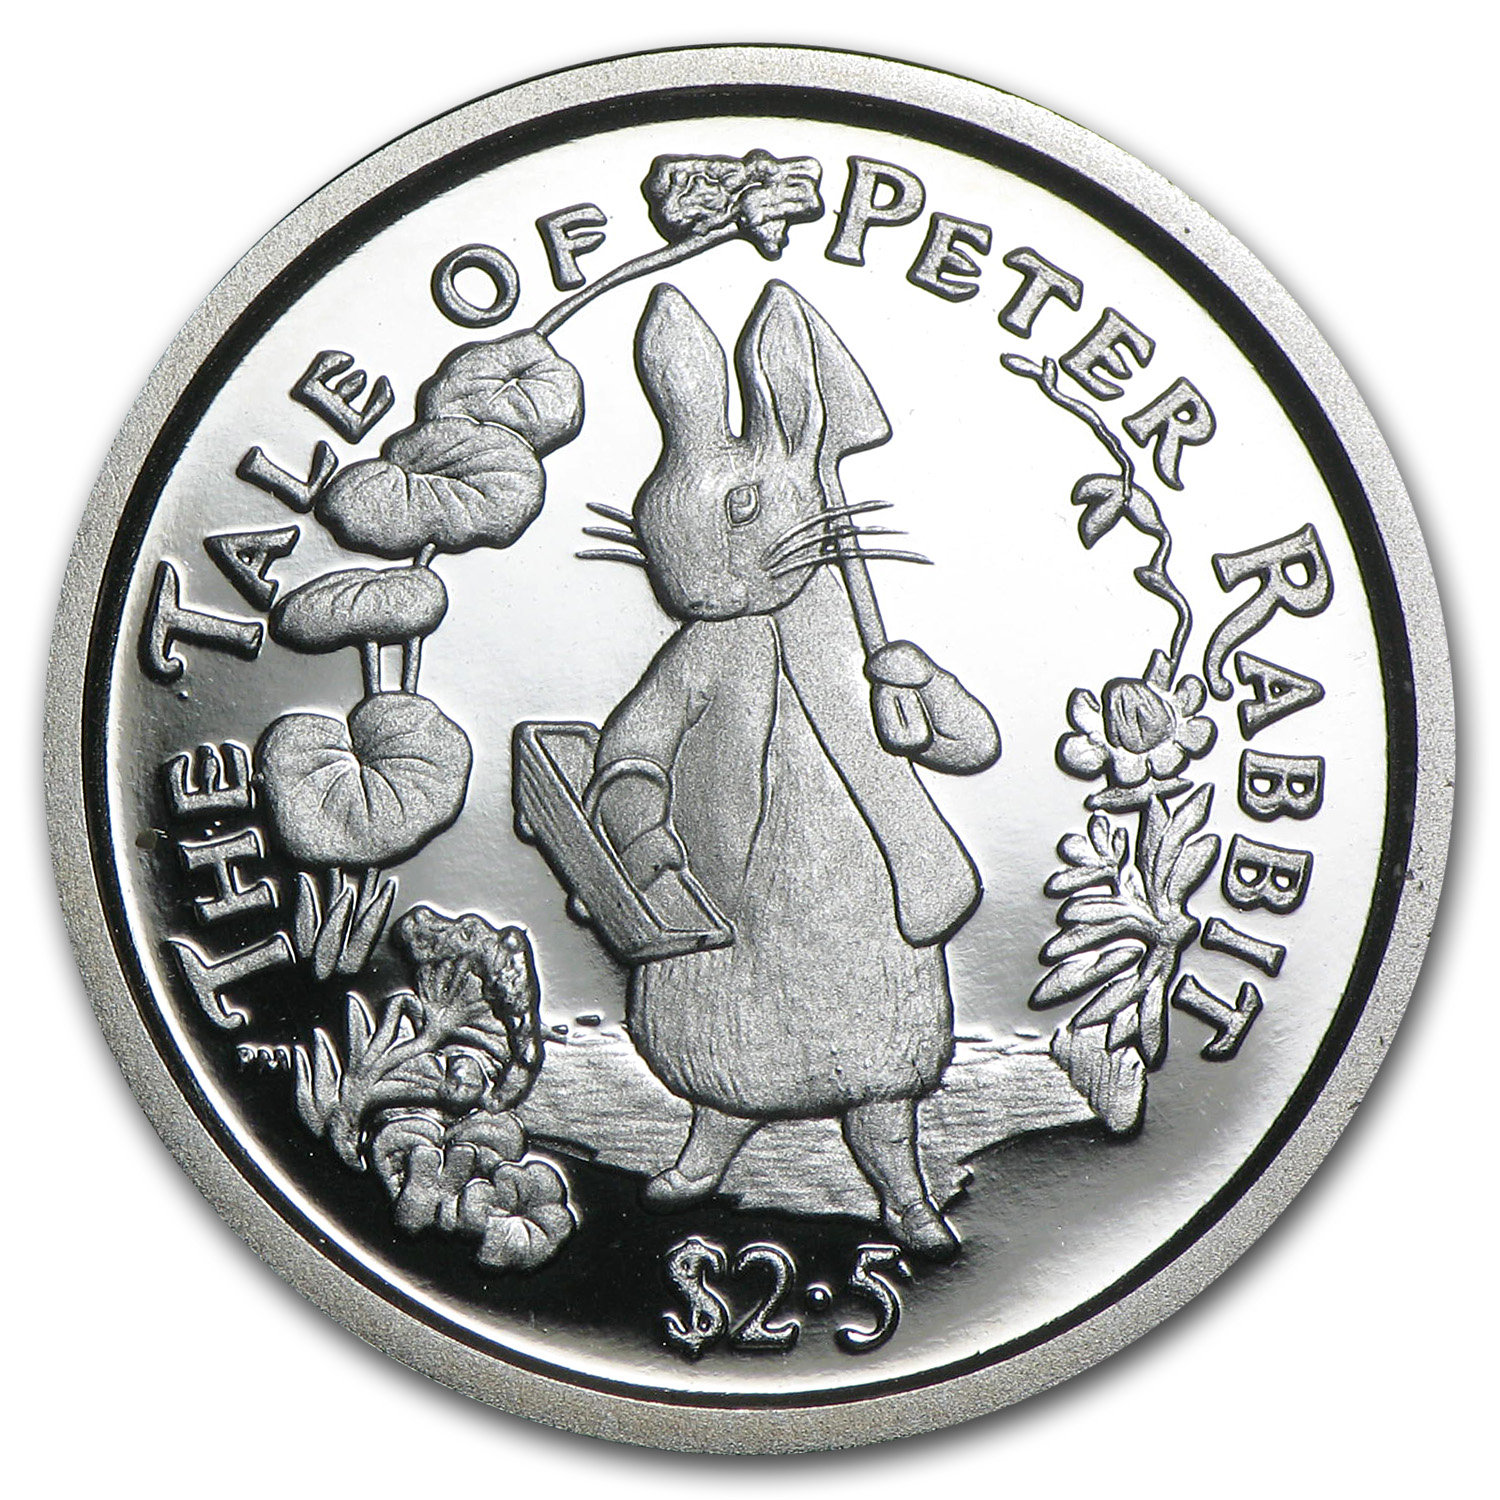 2004 British Virgin Islands 1/4 oz Silver Peter Rabbit Proof